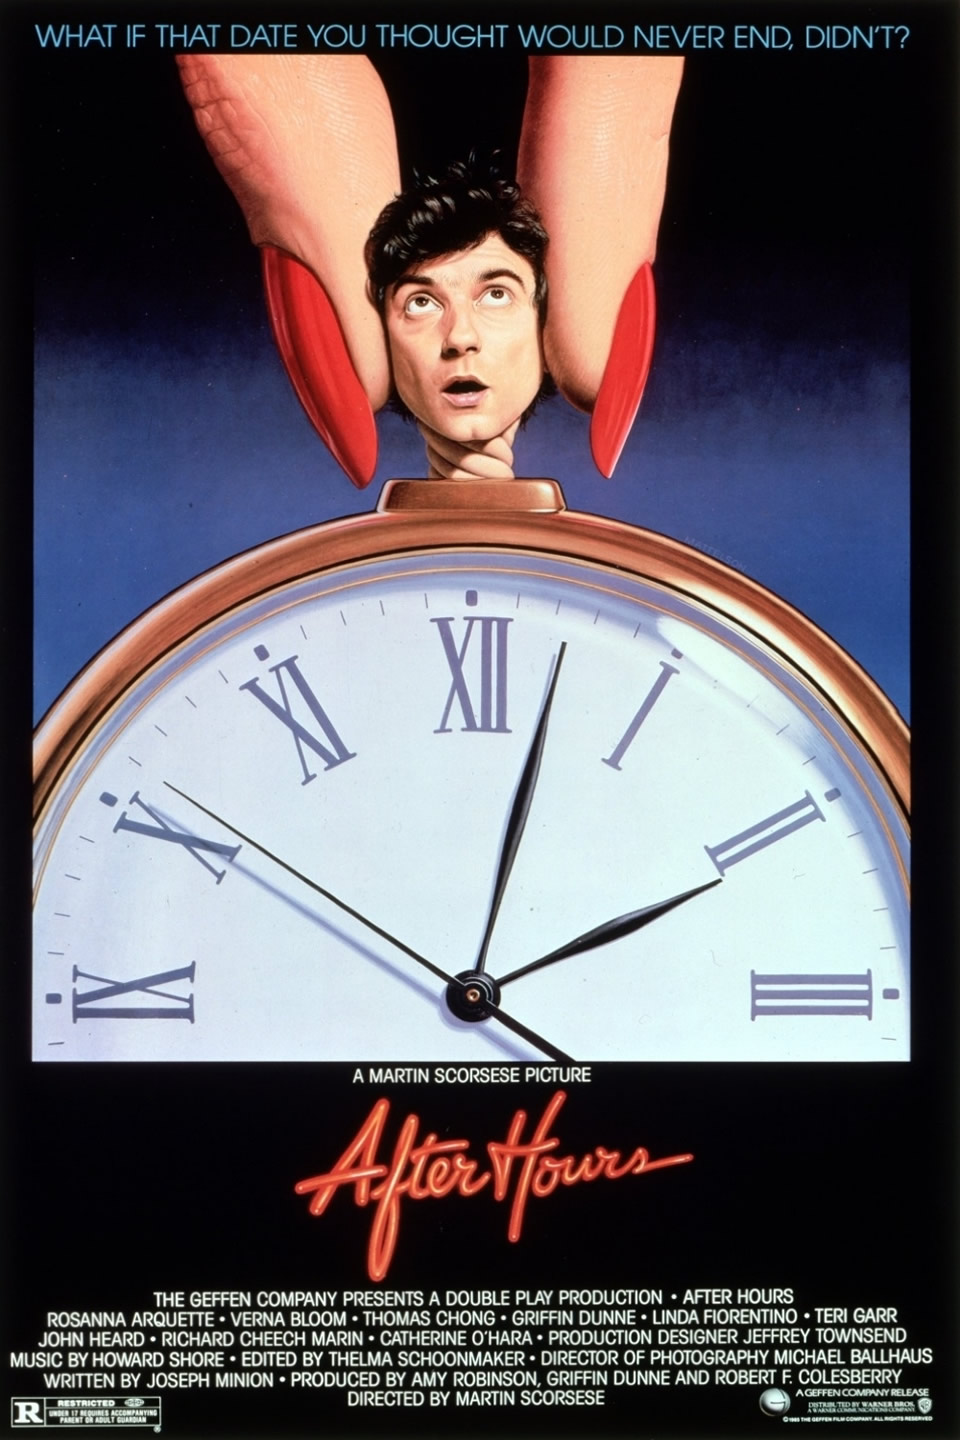 5. After Hours (1985)